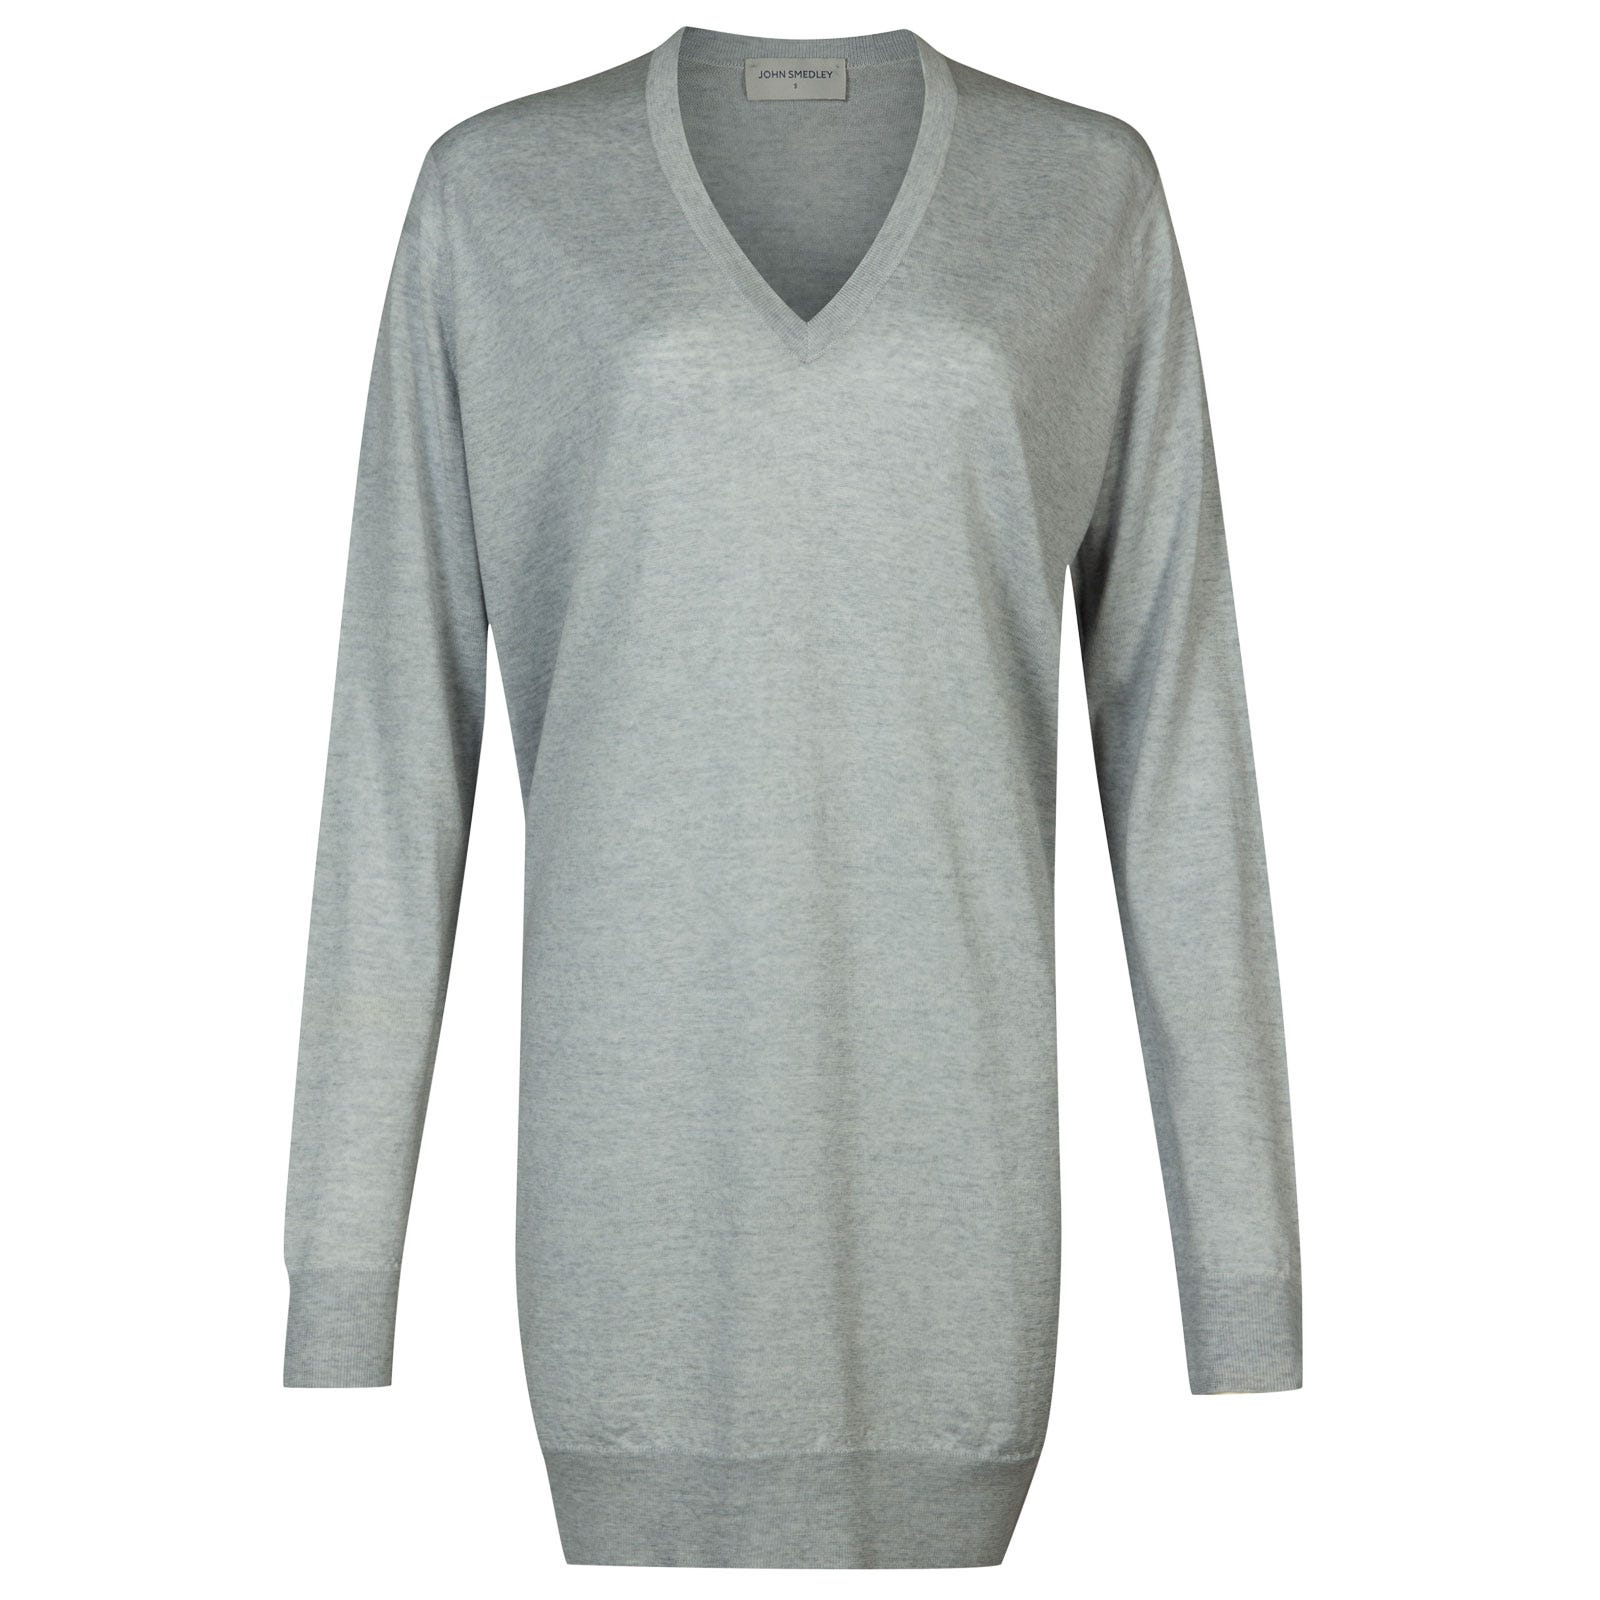 John Smedley Alma Merino Wool Sweater in Bardot Grey-XL